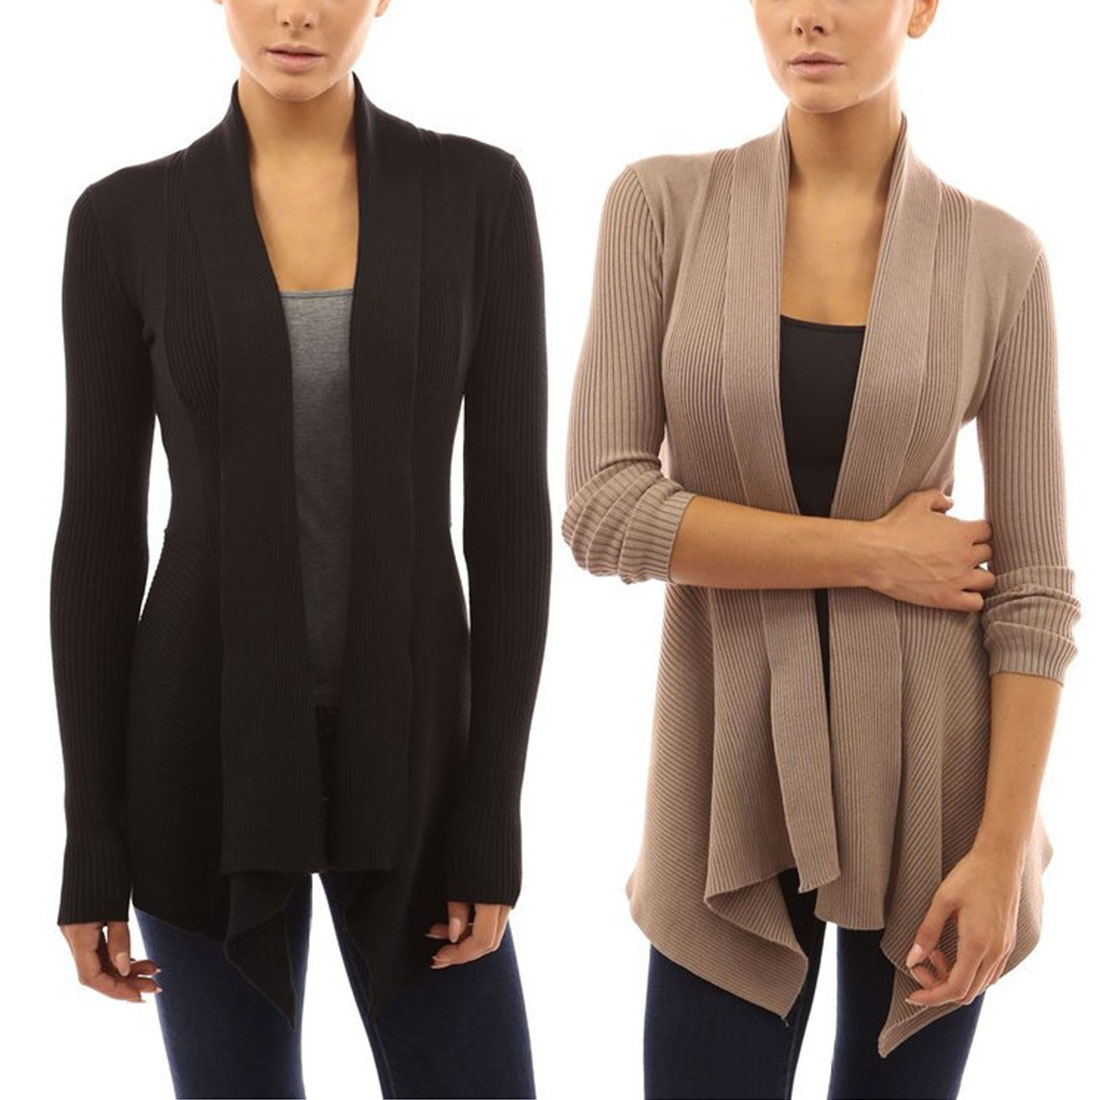 Compare Prices on Knit Draped Cardigan- Online Shopping/Buy Low ...